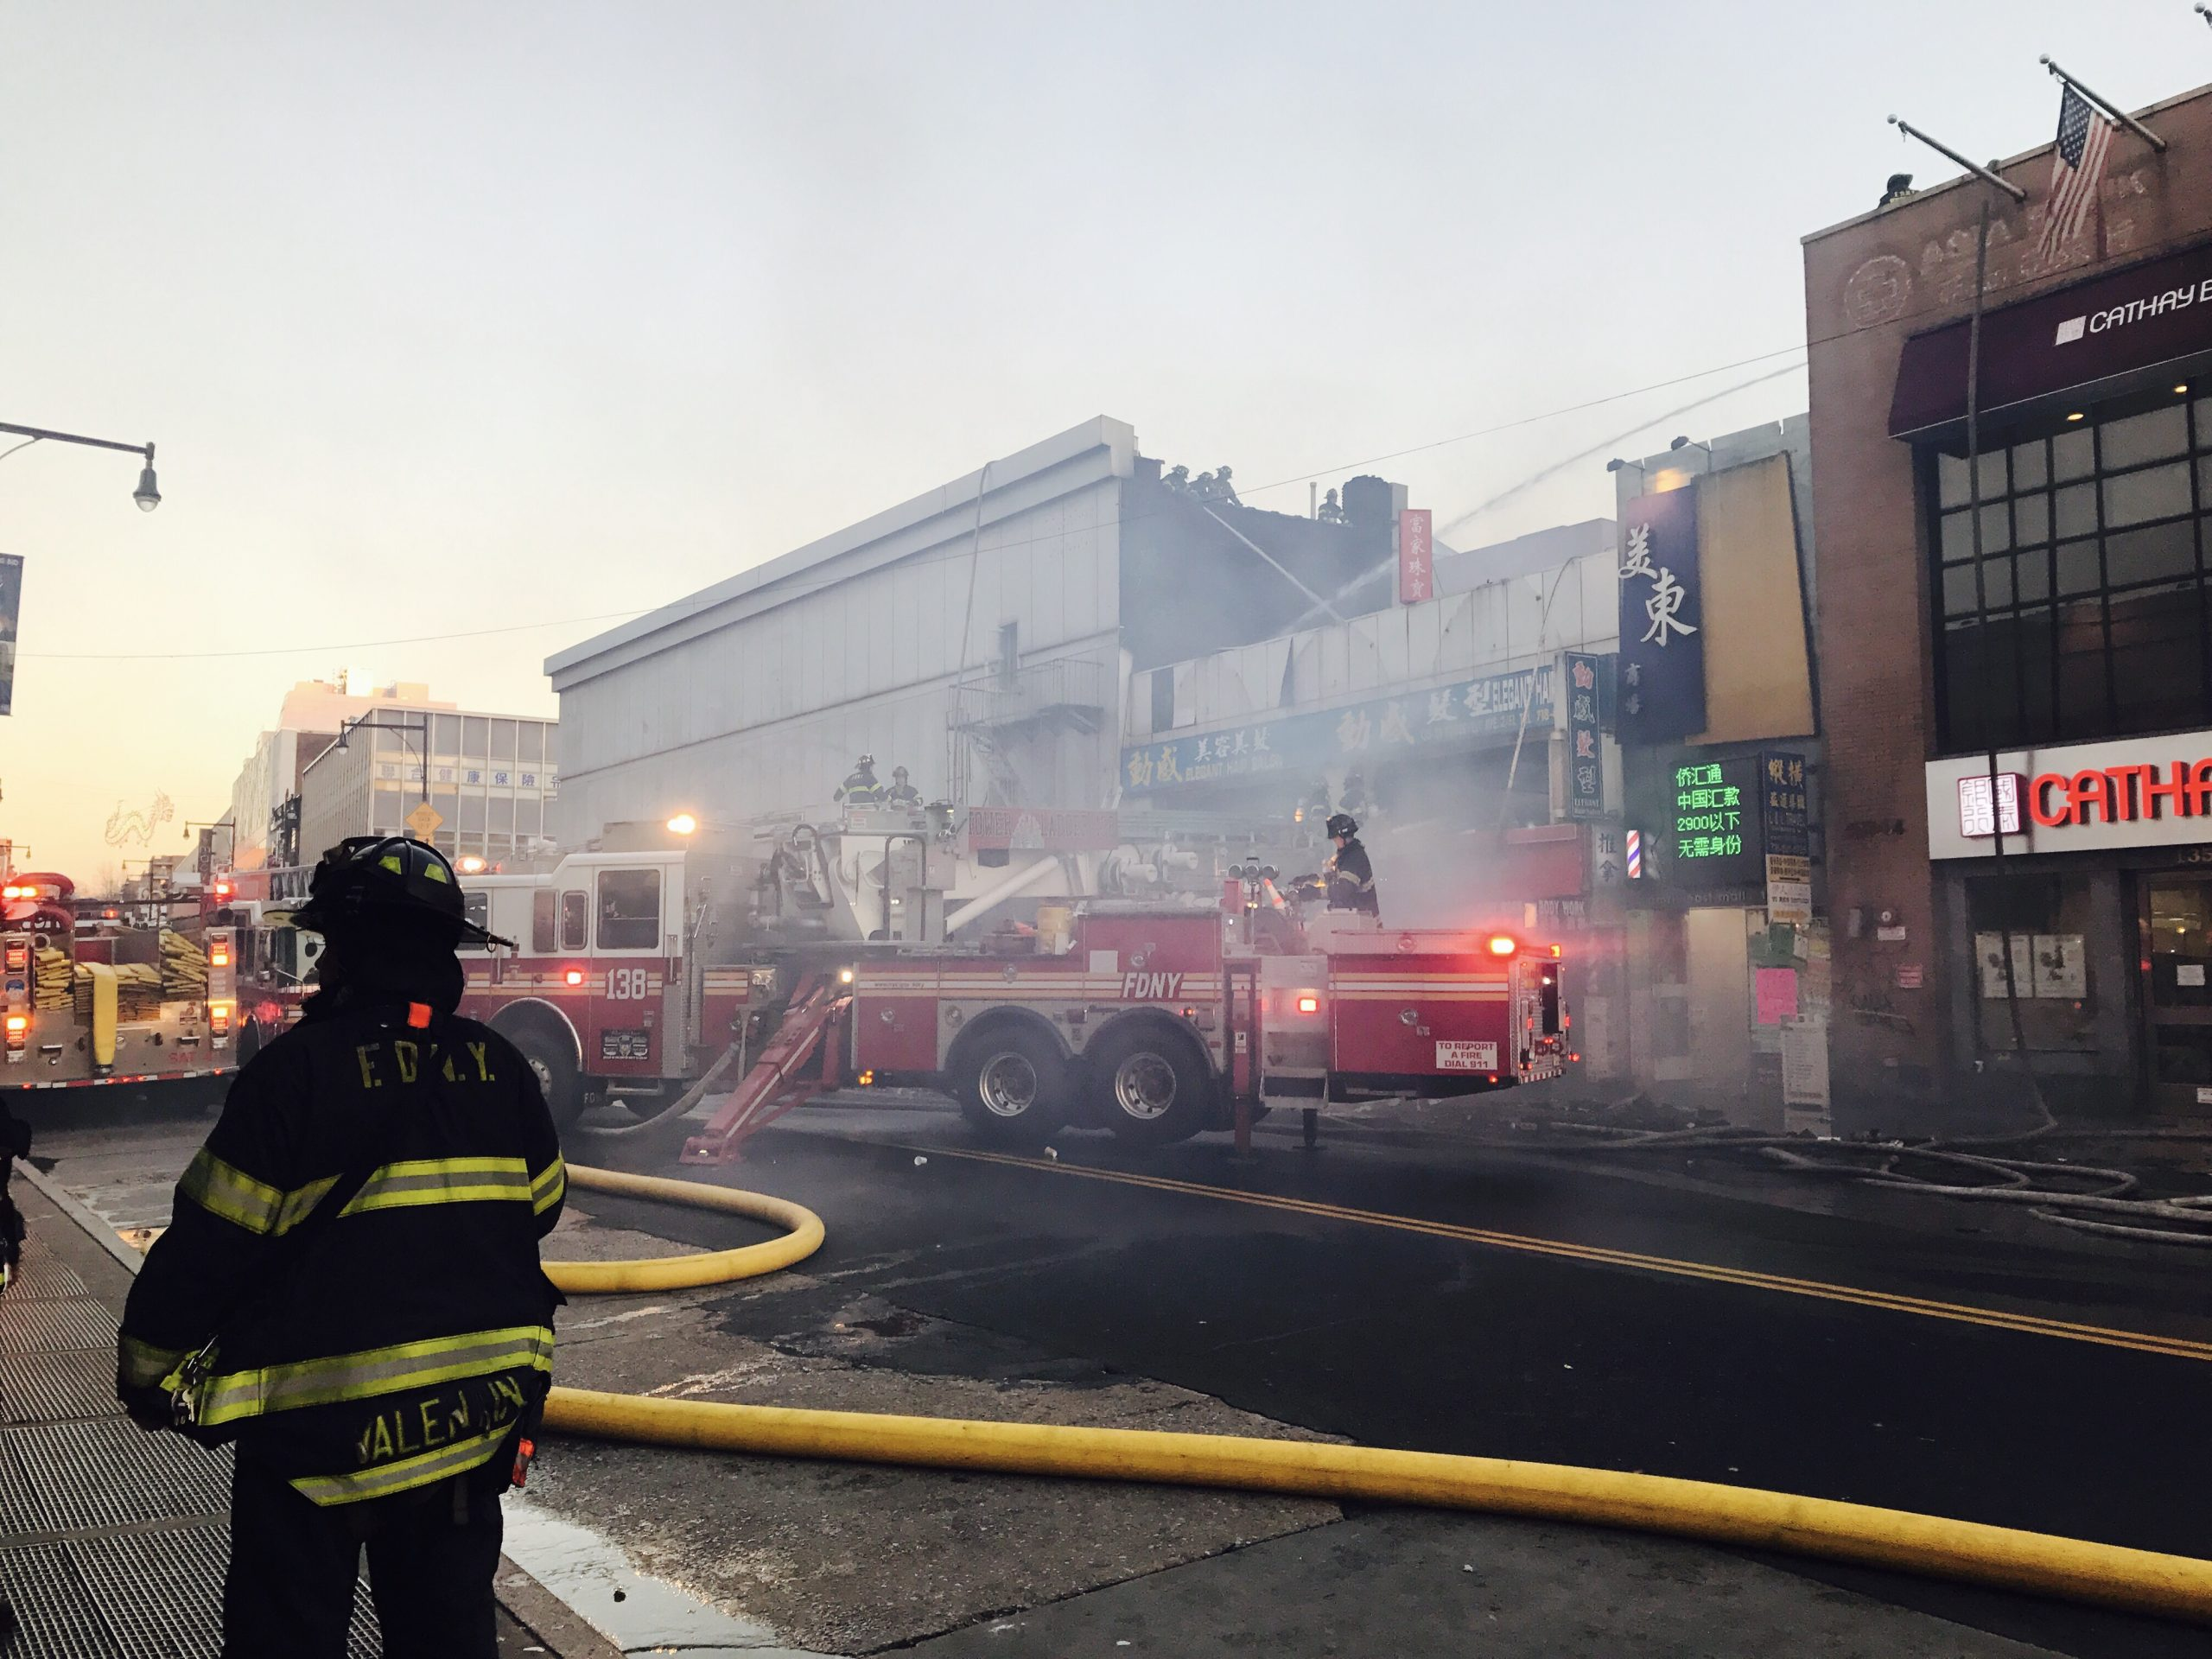 4-Alarm Fire breaks out in Flushing, Queens